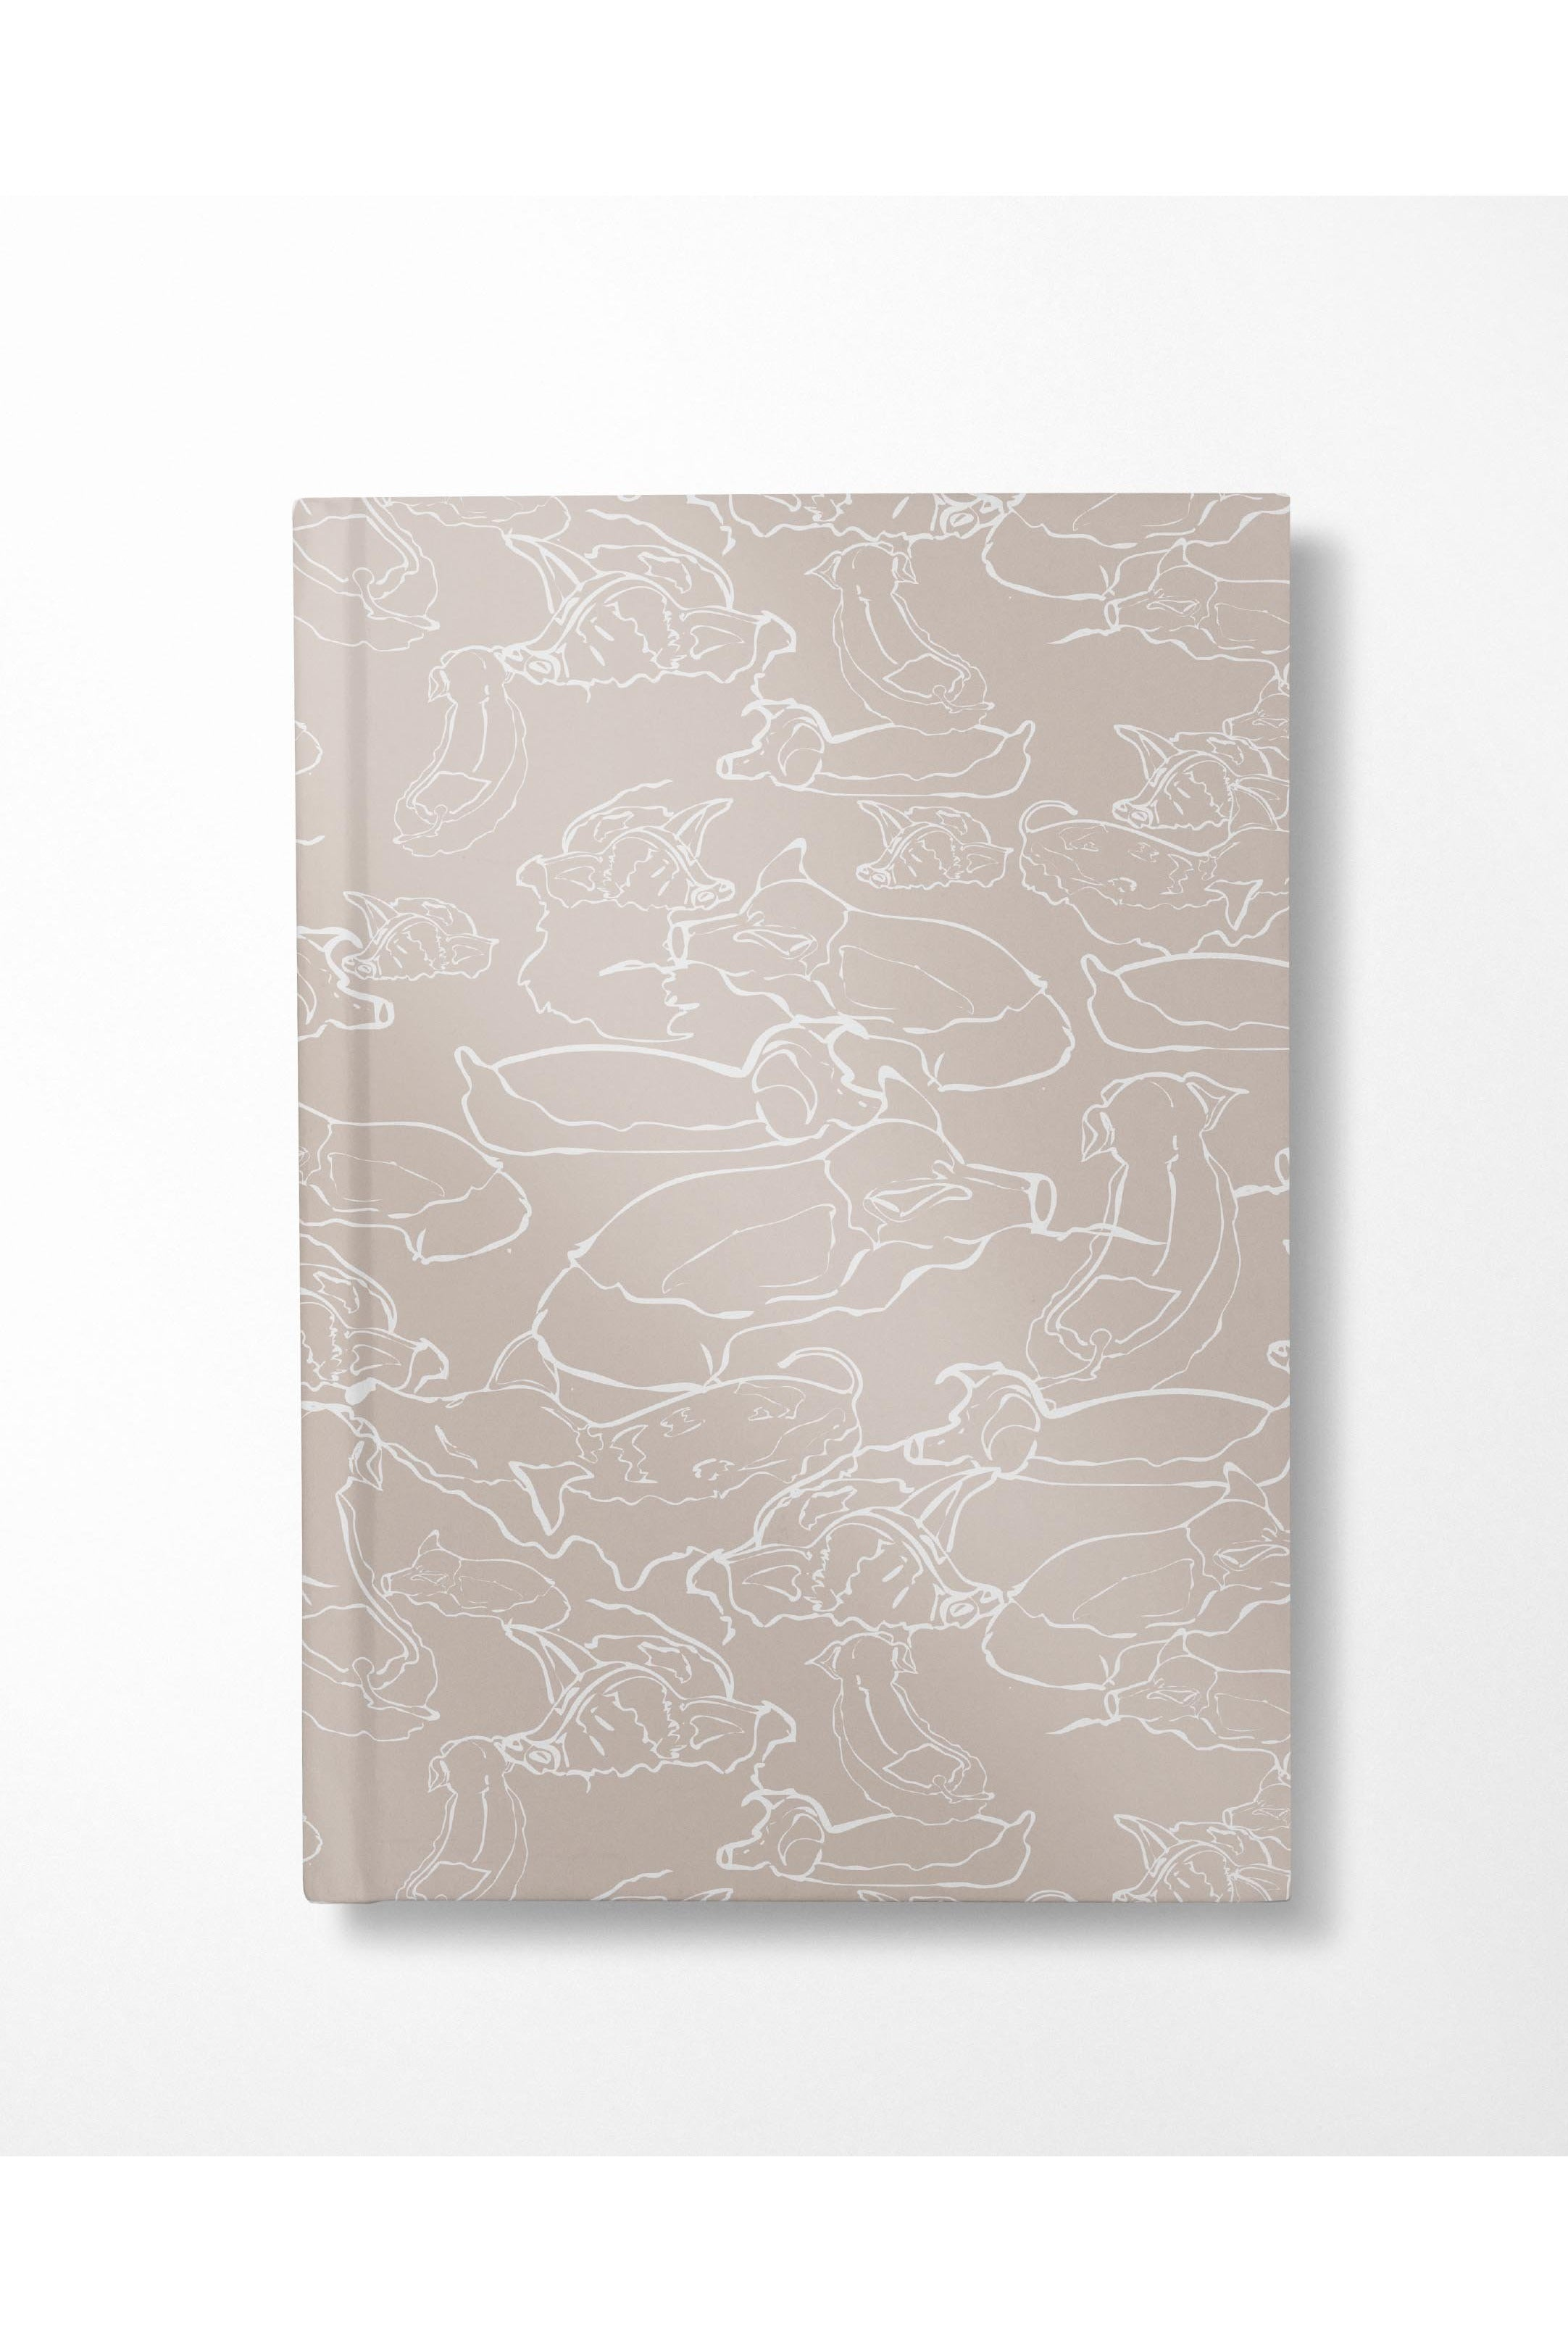 Swimming With The Pigs Notebook - Sand - Hausofassembly